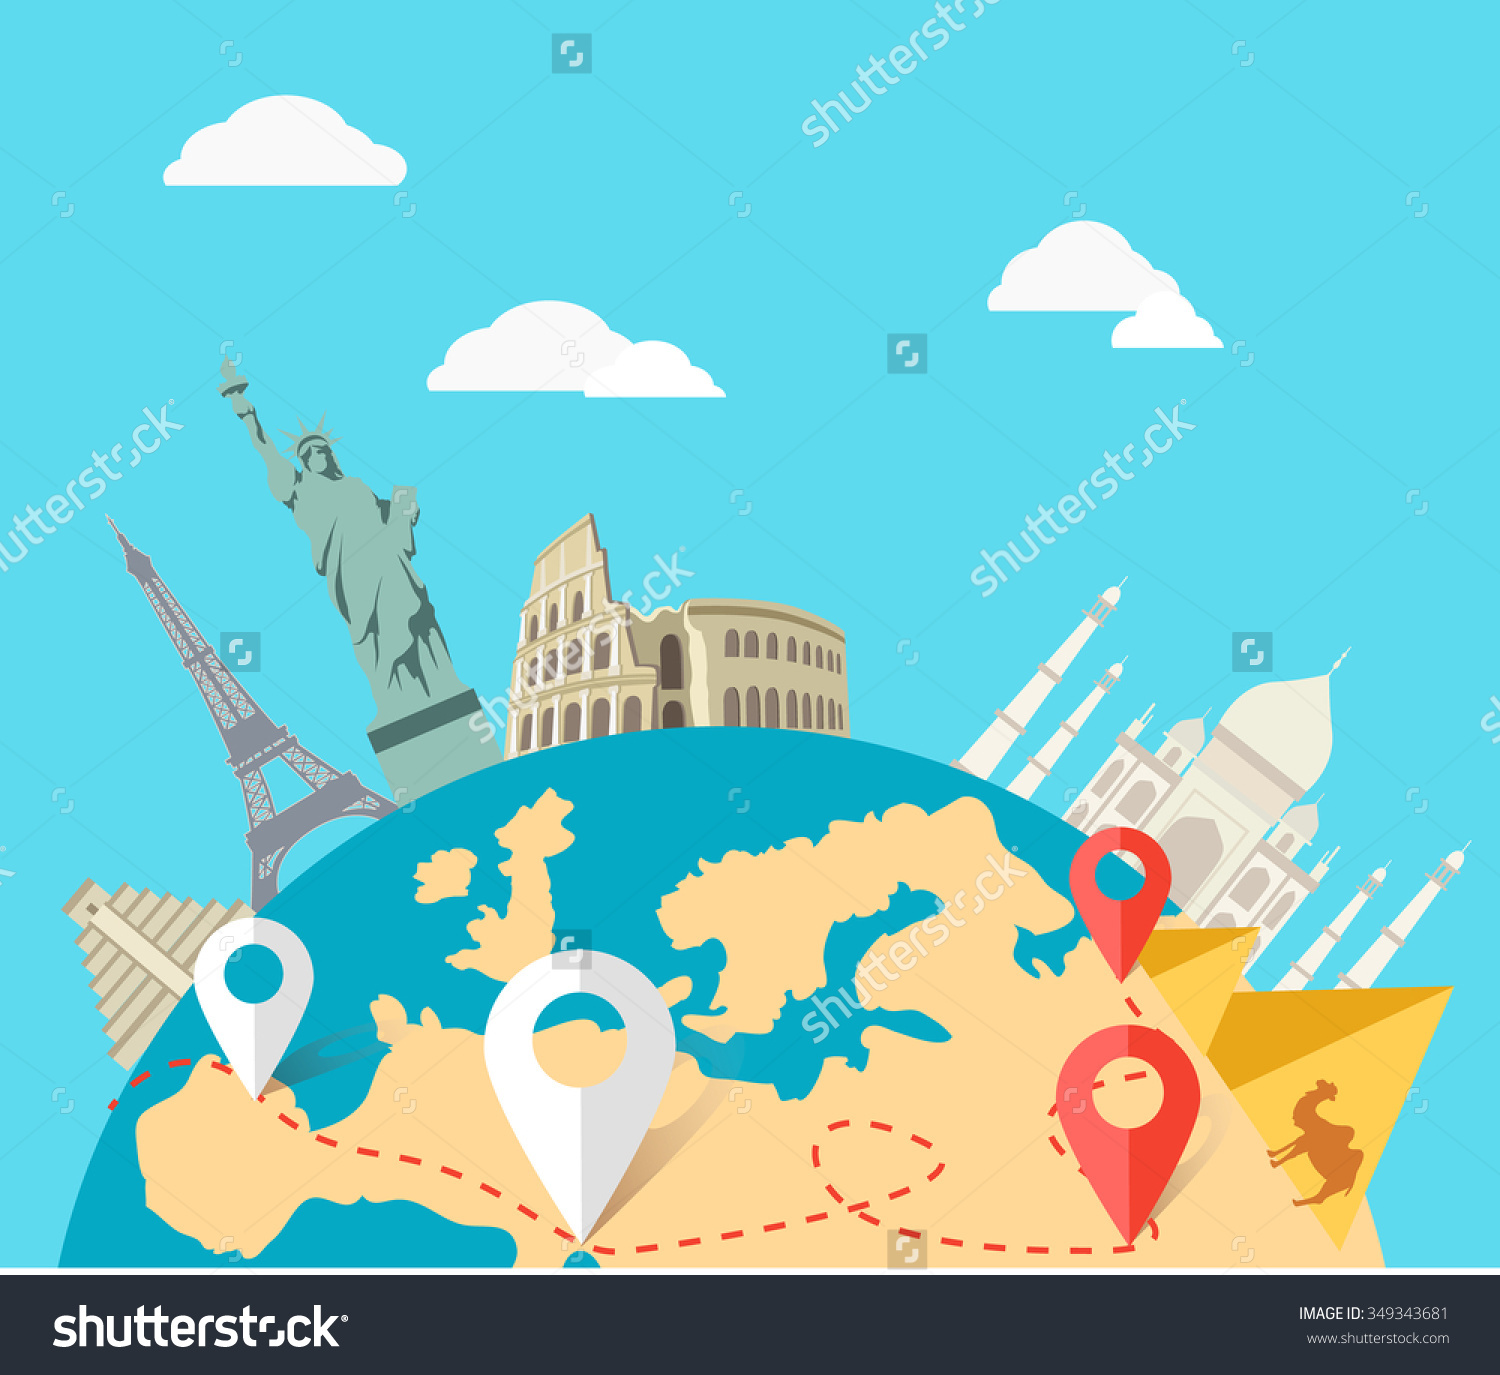 World Adventure Travel Relaxation Journey Leisure Stock Vector.